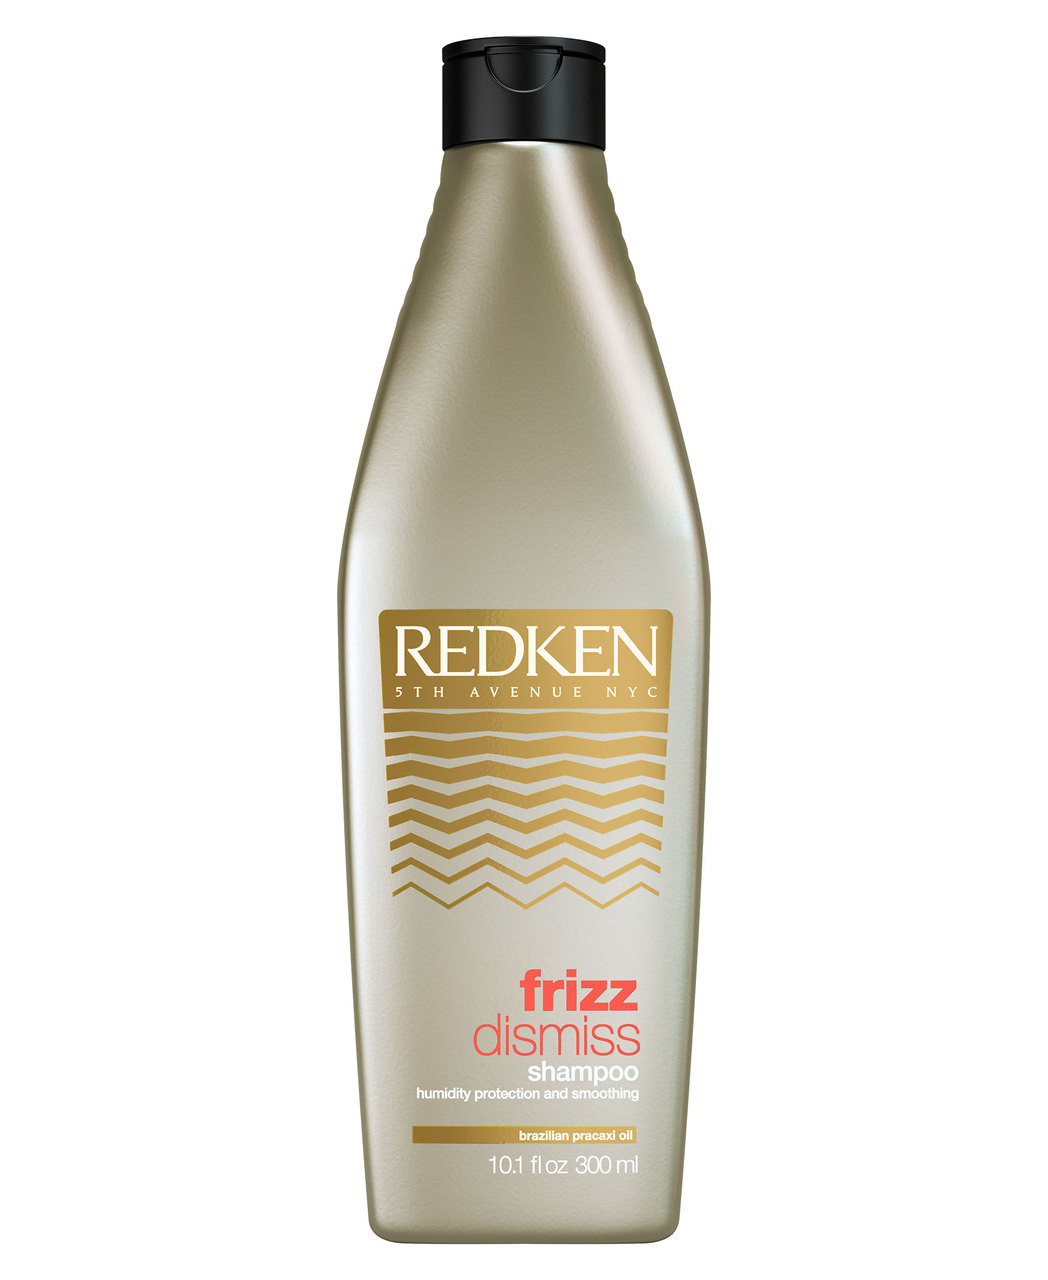 Redken Frizz Dismiss Shampoo, 10.1-oz - Trade Secret